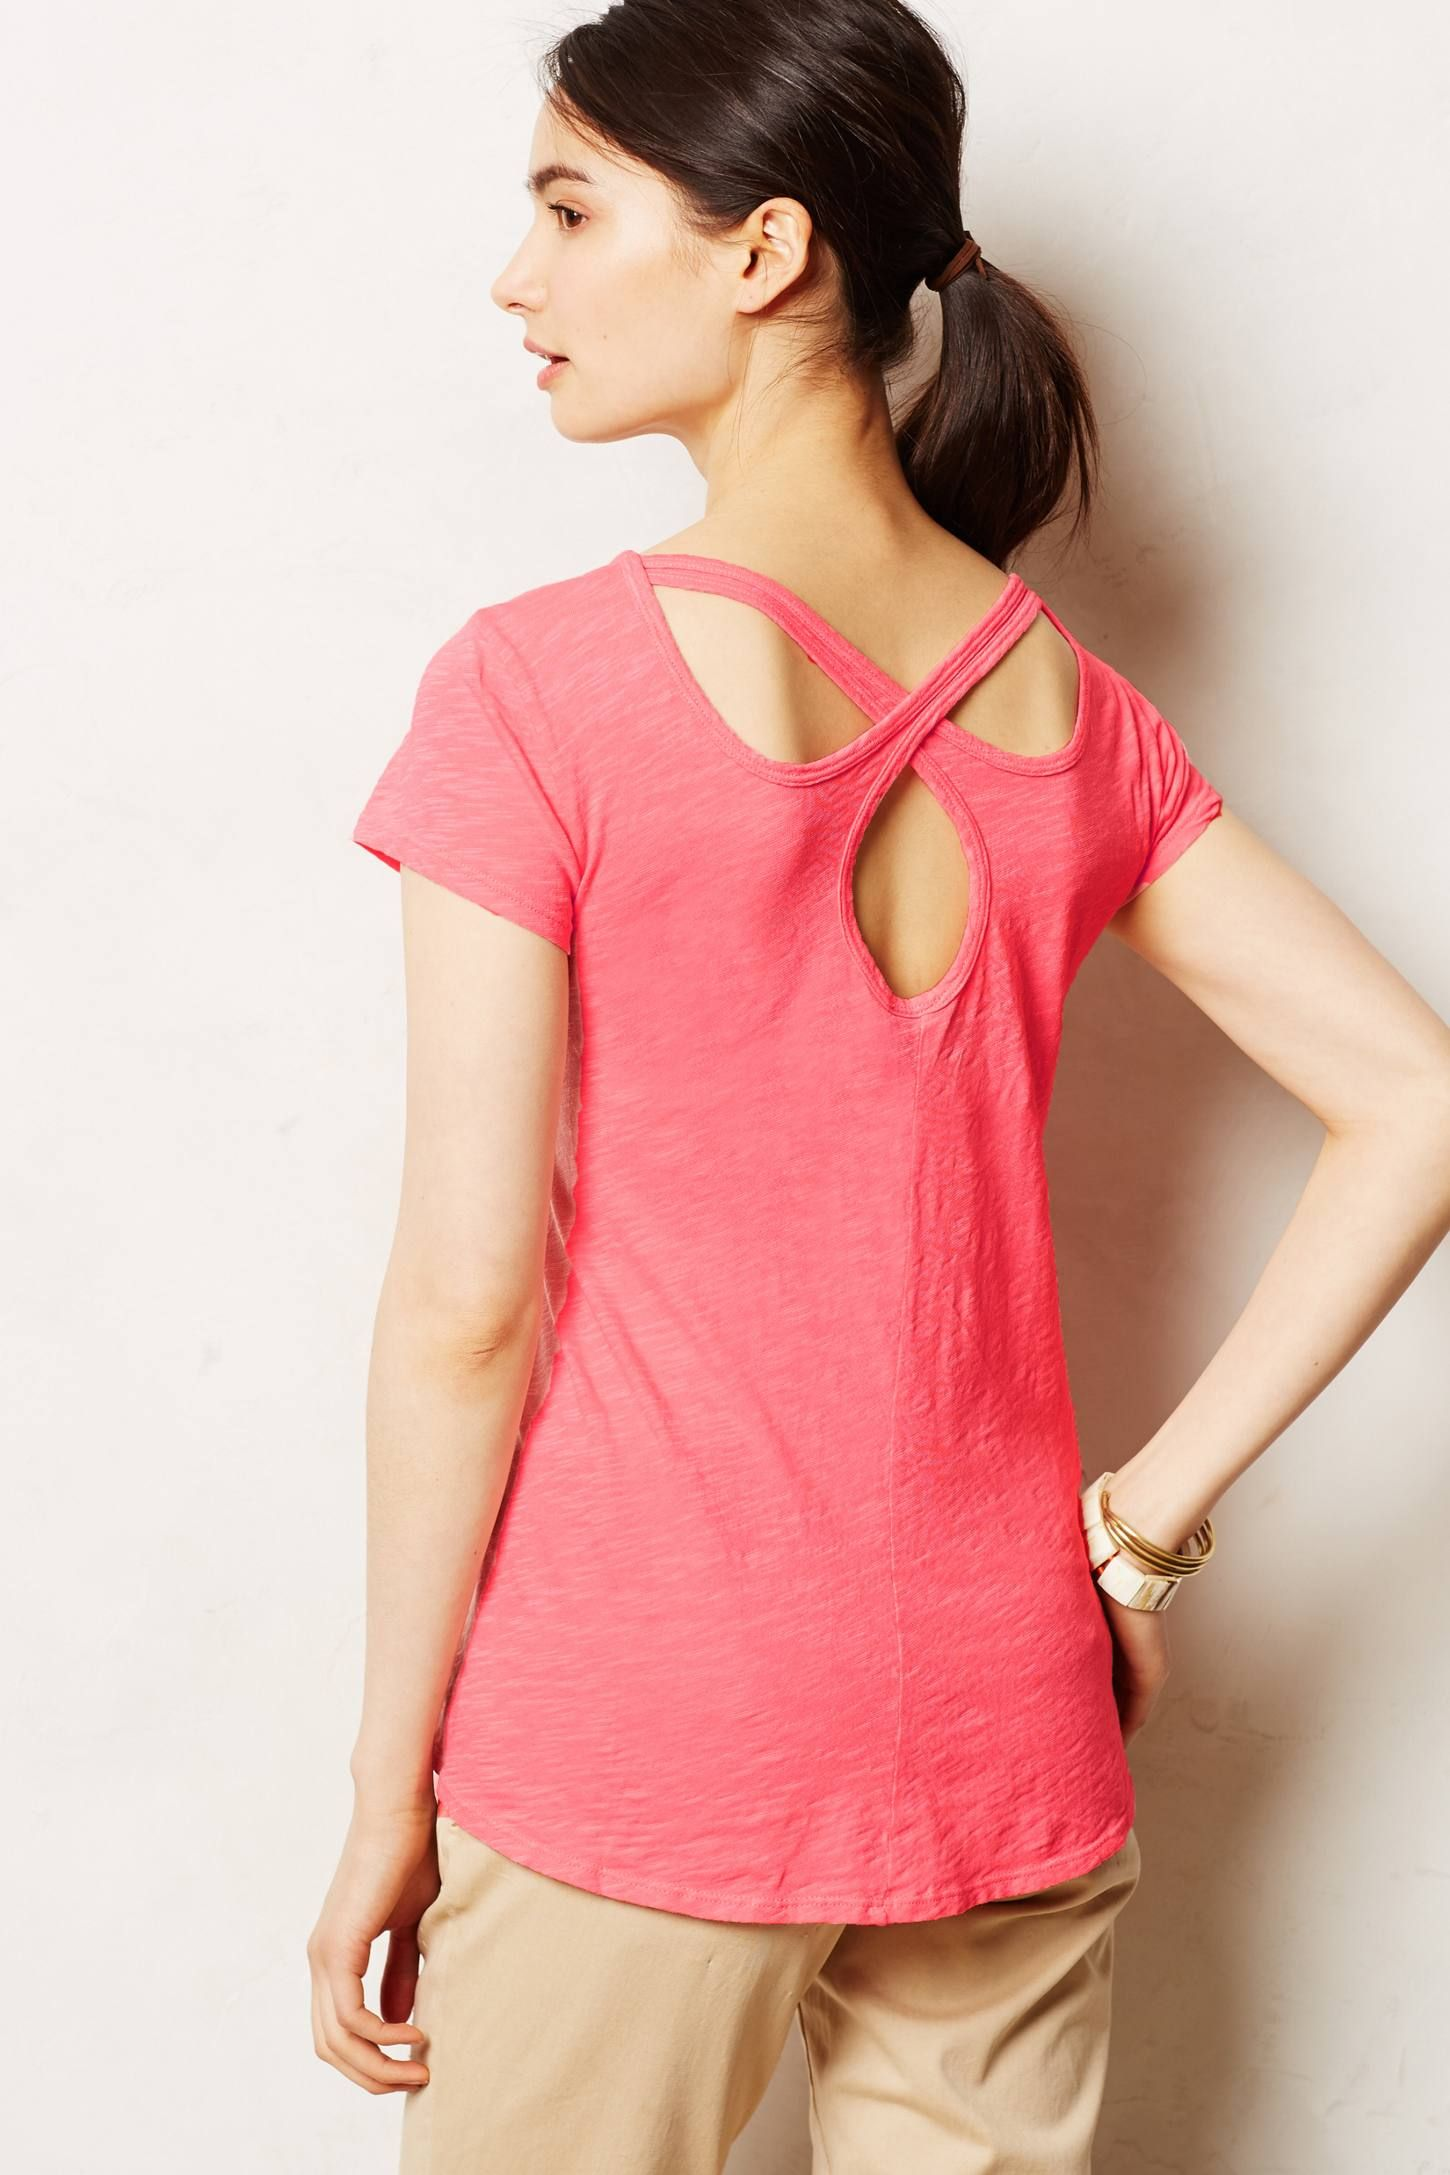 Lunation Tee in Coral - anthropologie.com